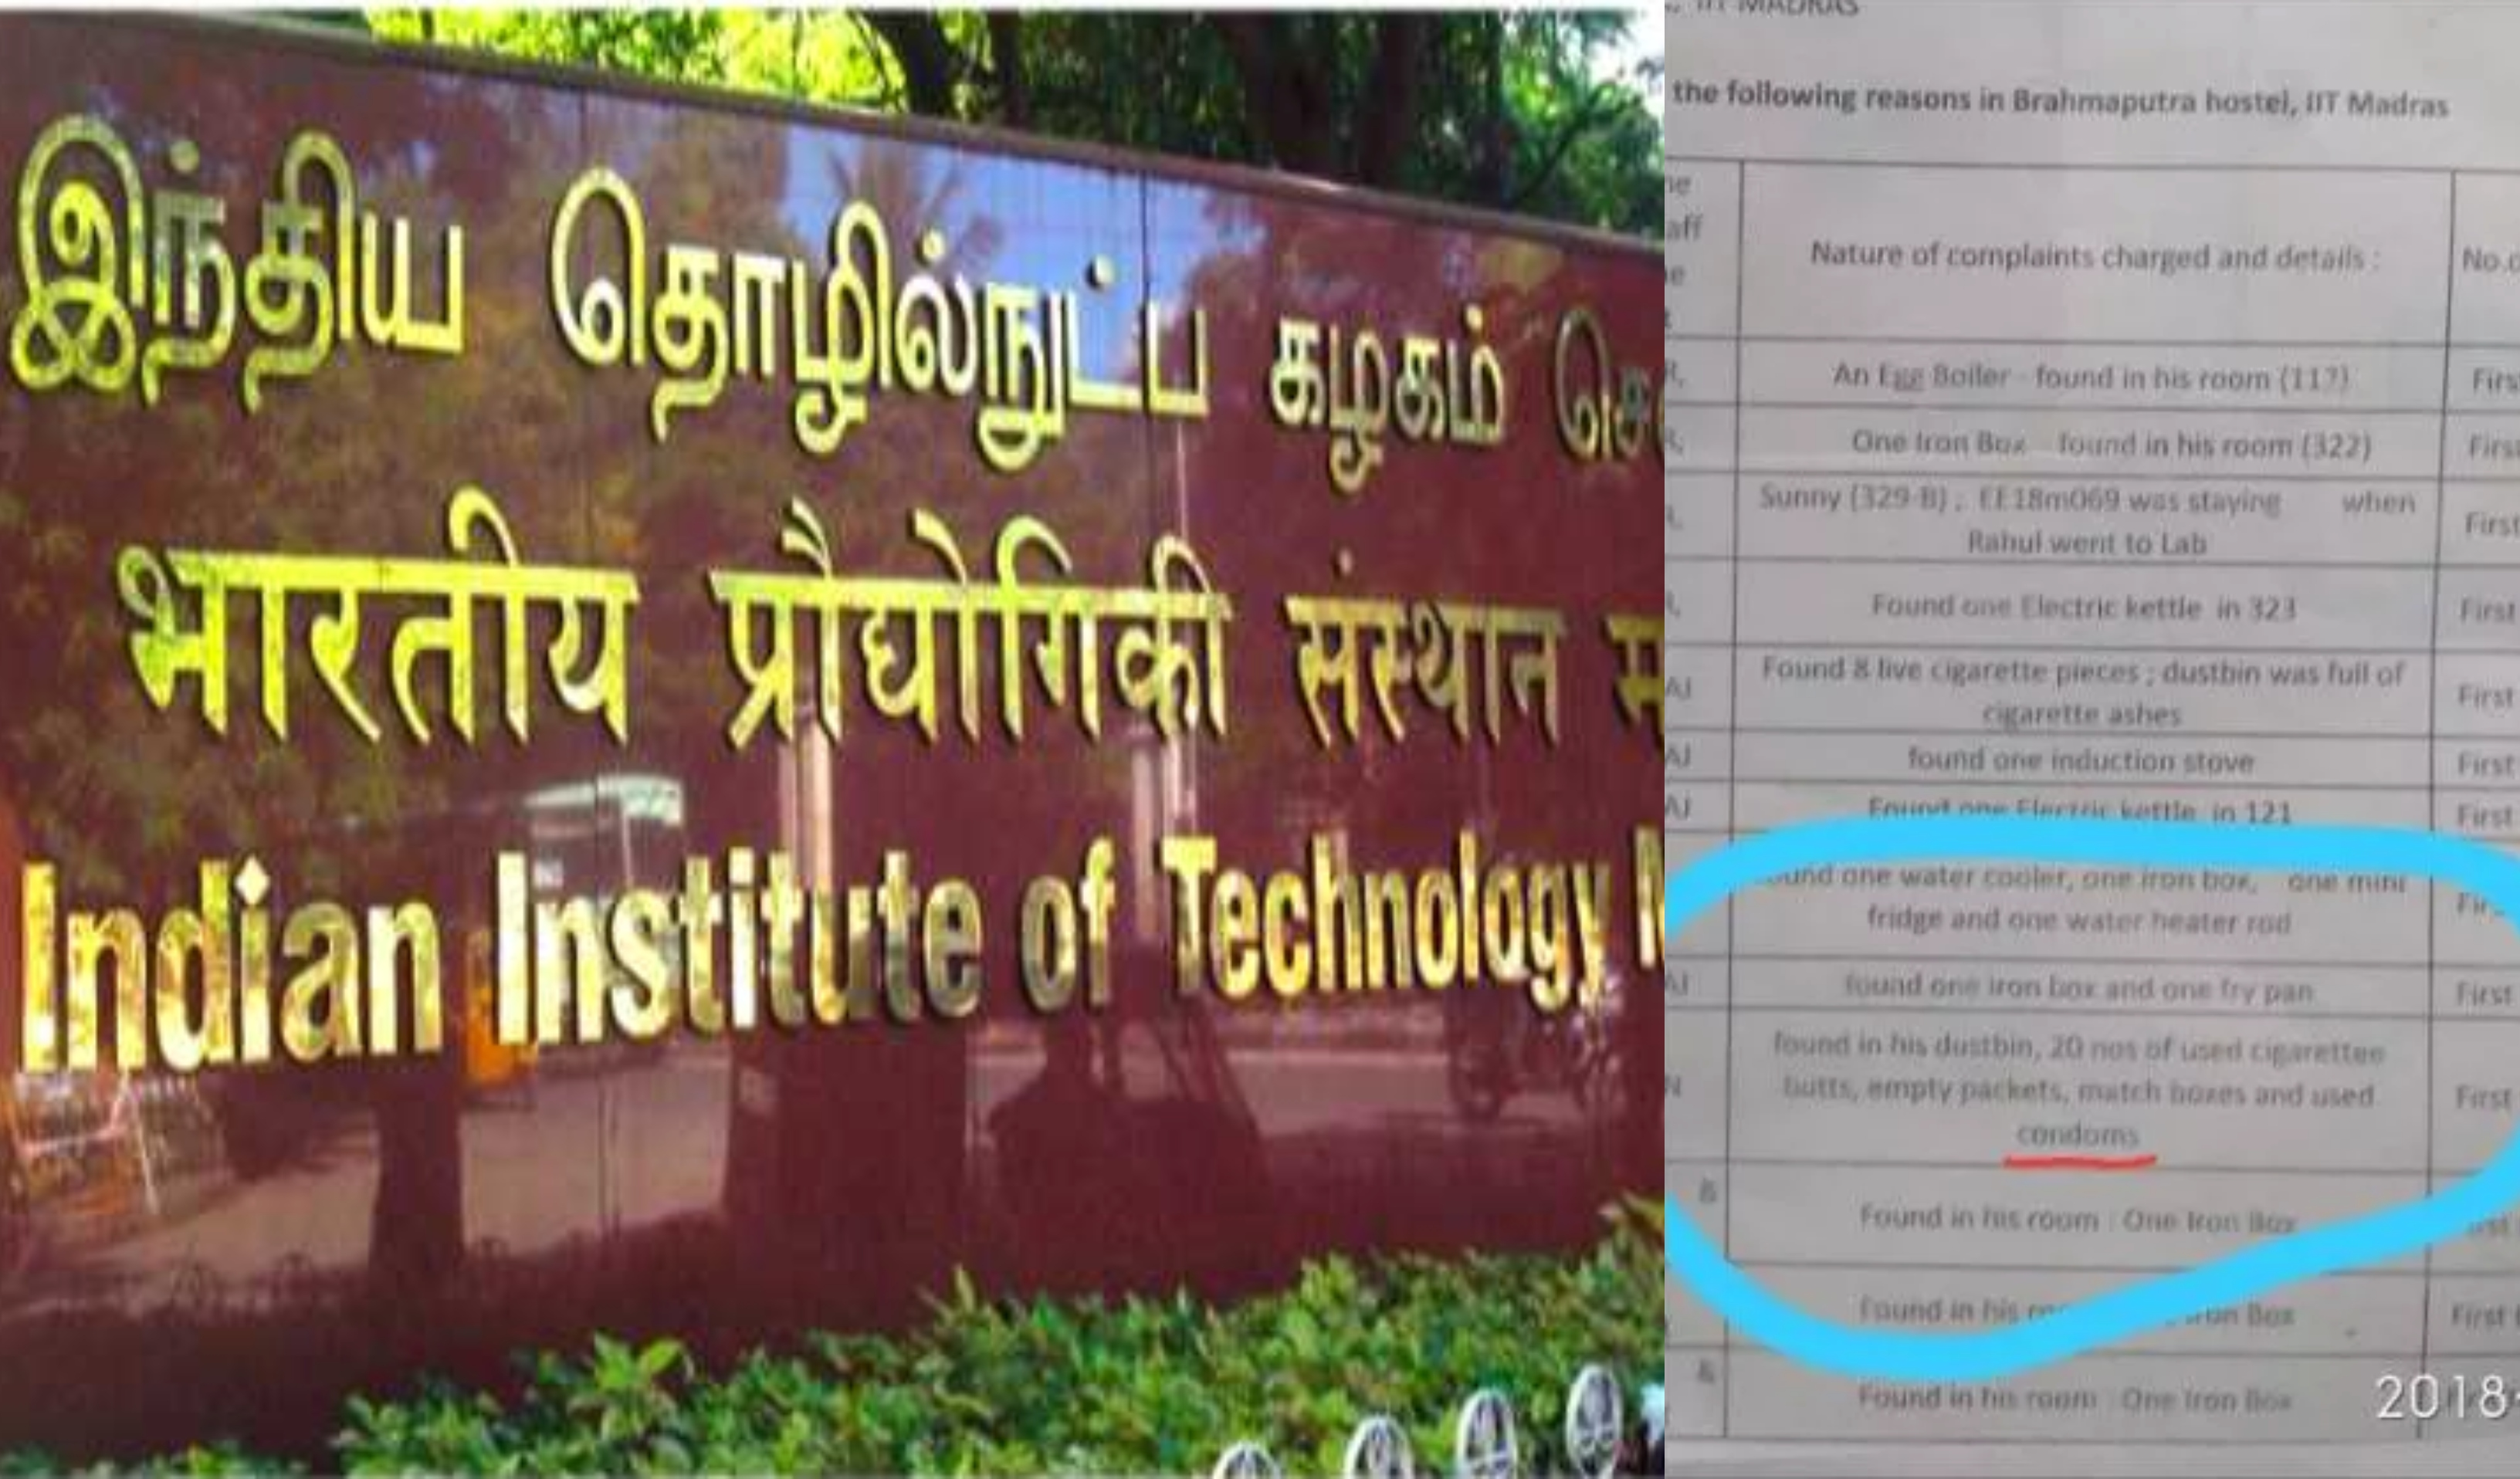 IIT, Madras, Condoms, Indian Institute Technology, NewsMobile, Mobile, News, India